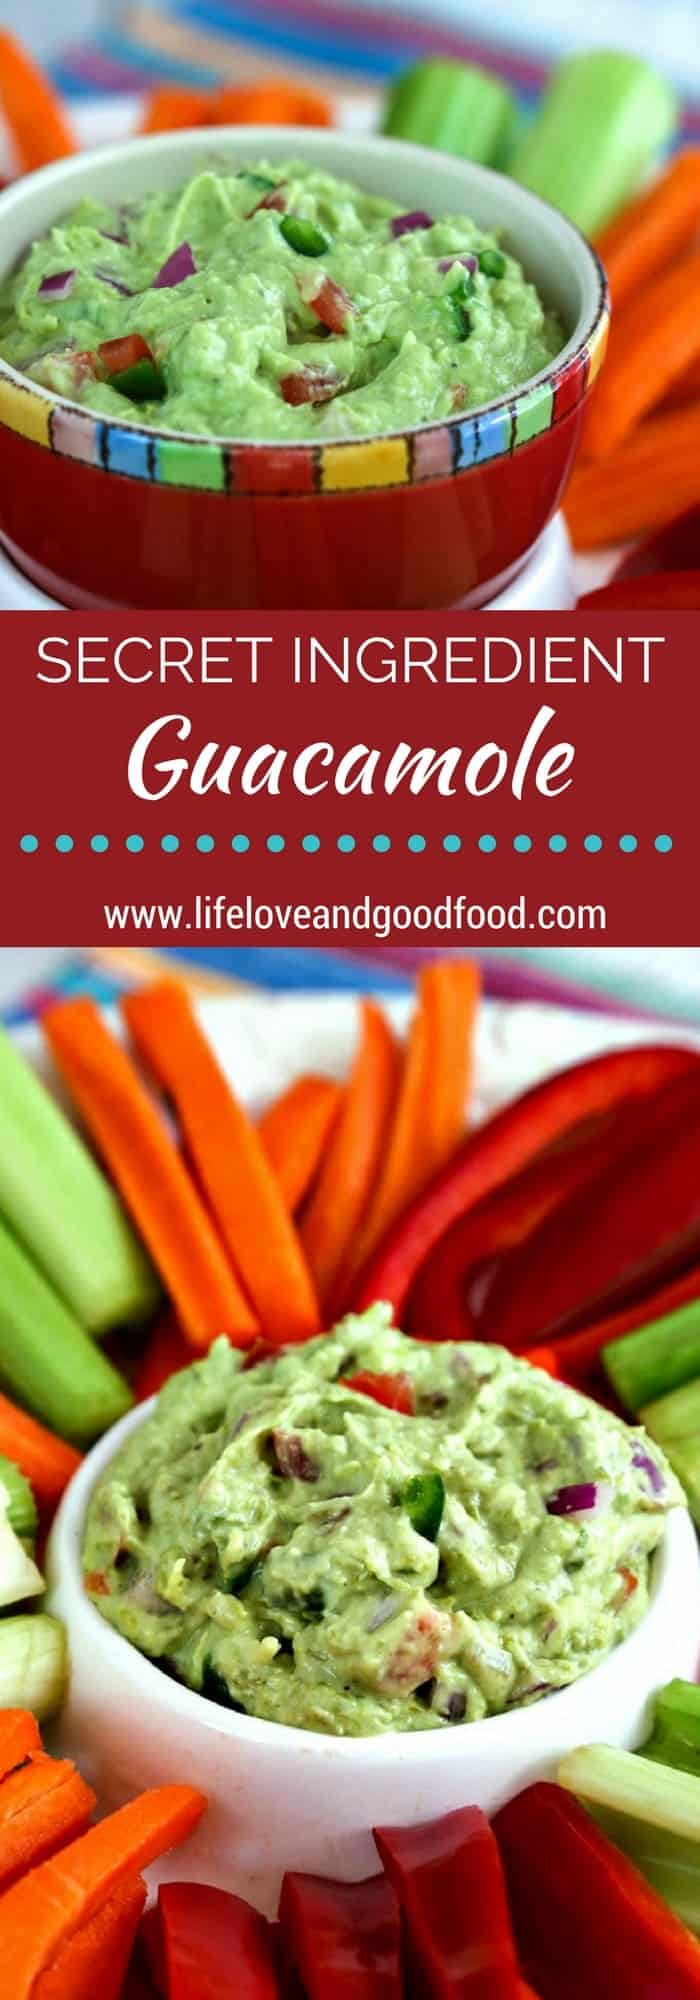 A secret ingredient in this deliciously creamy dip adds more vitamins and nutrients to your traditional guacamole recipe. Eat it with veggie sticks for a guilt-free, heart-healthy snack!